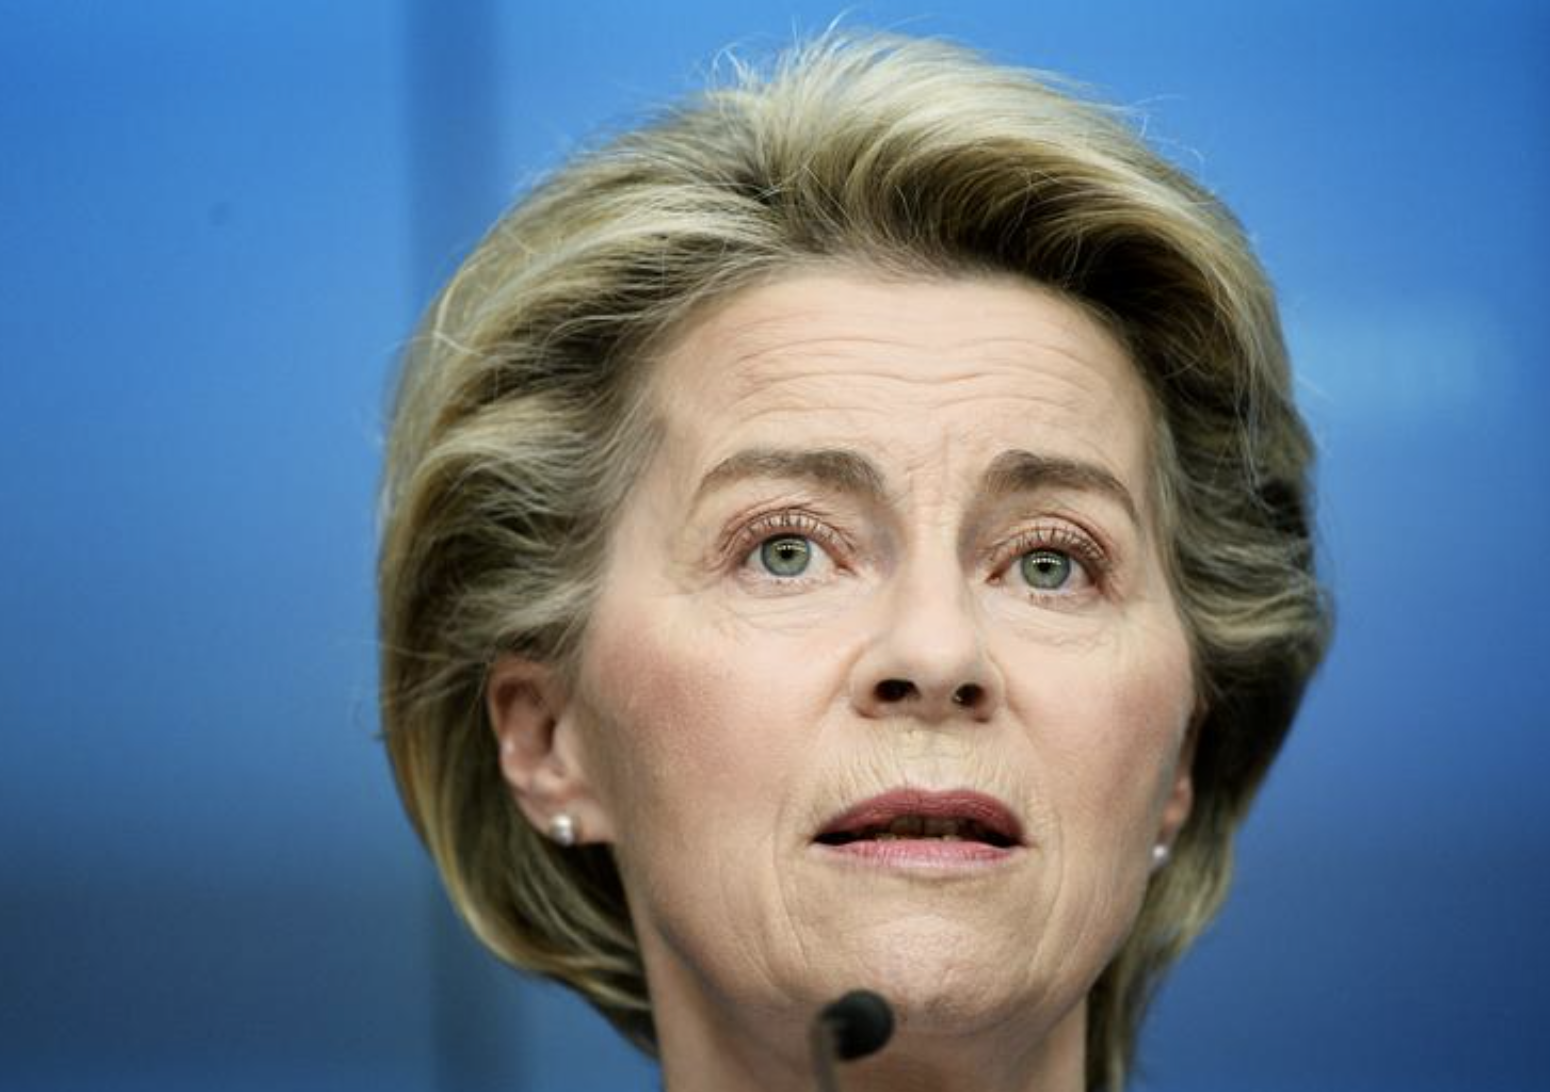 Start work on vaccination certificates, von der Leyen tells EU